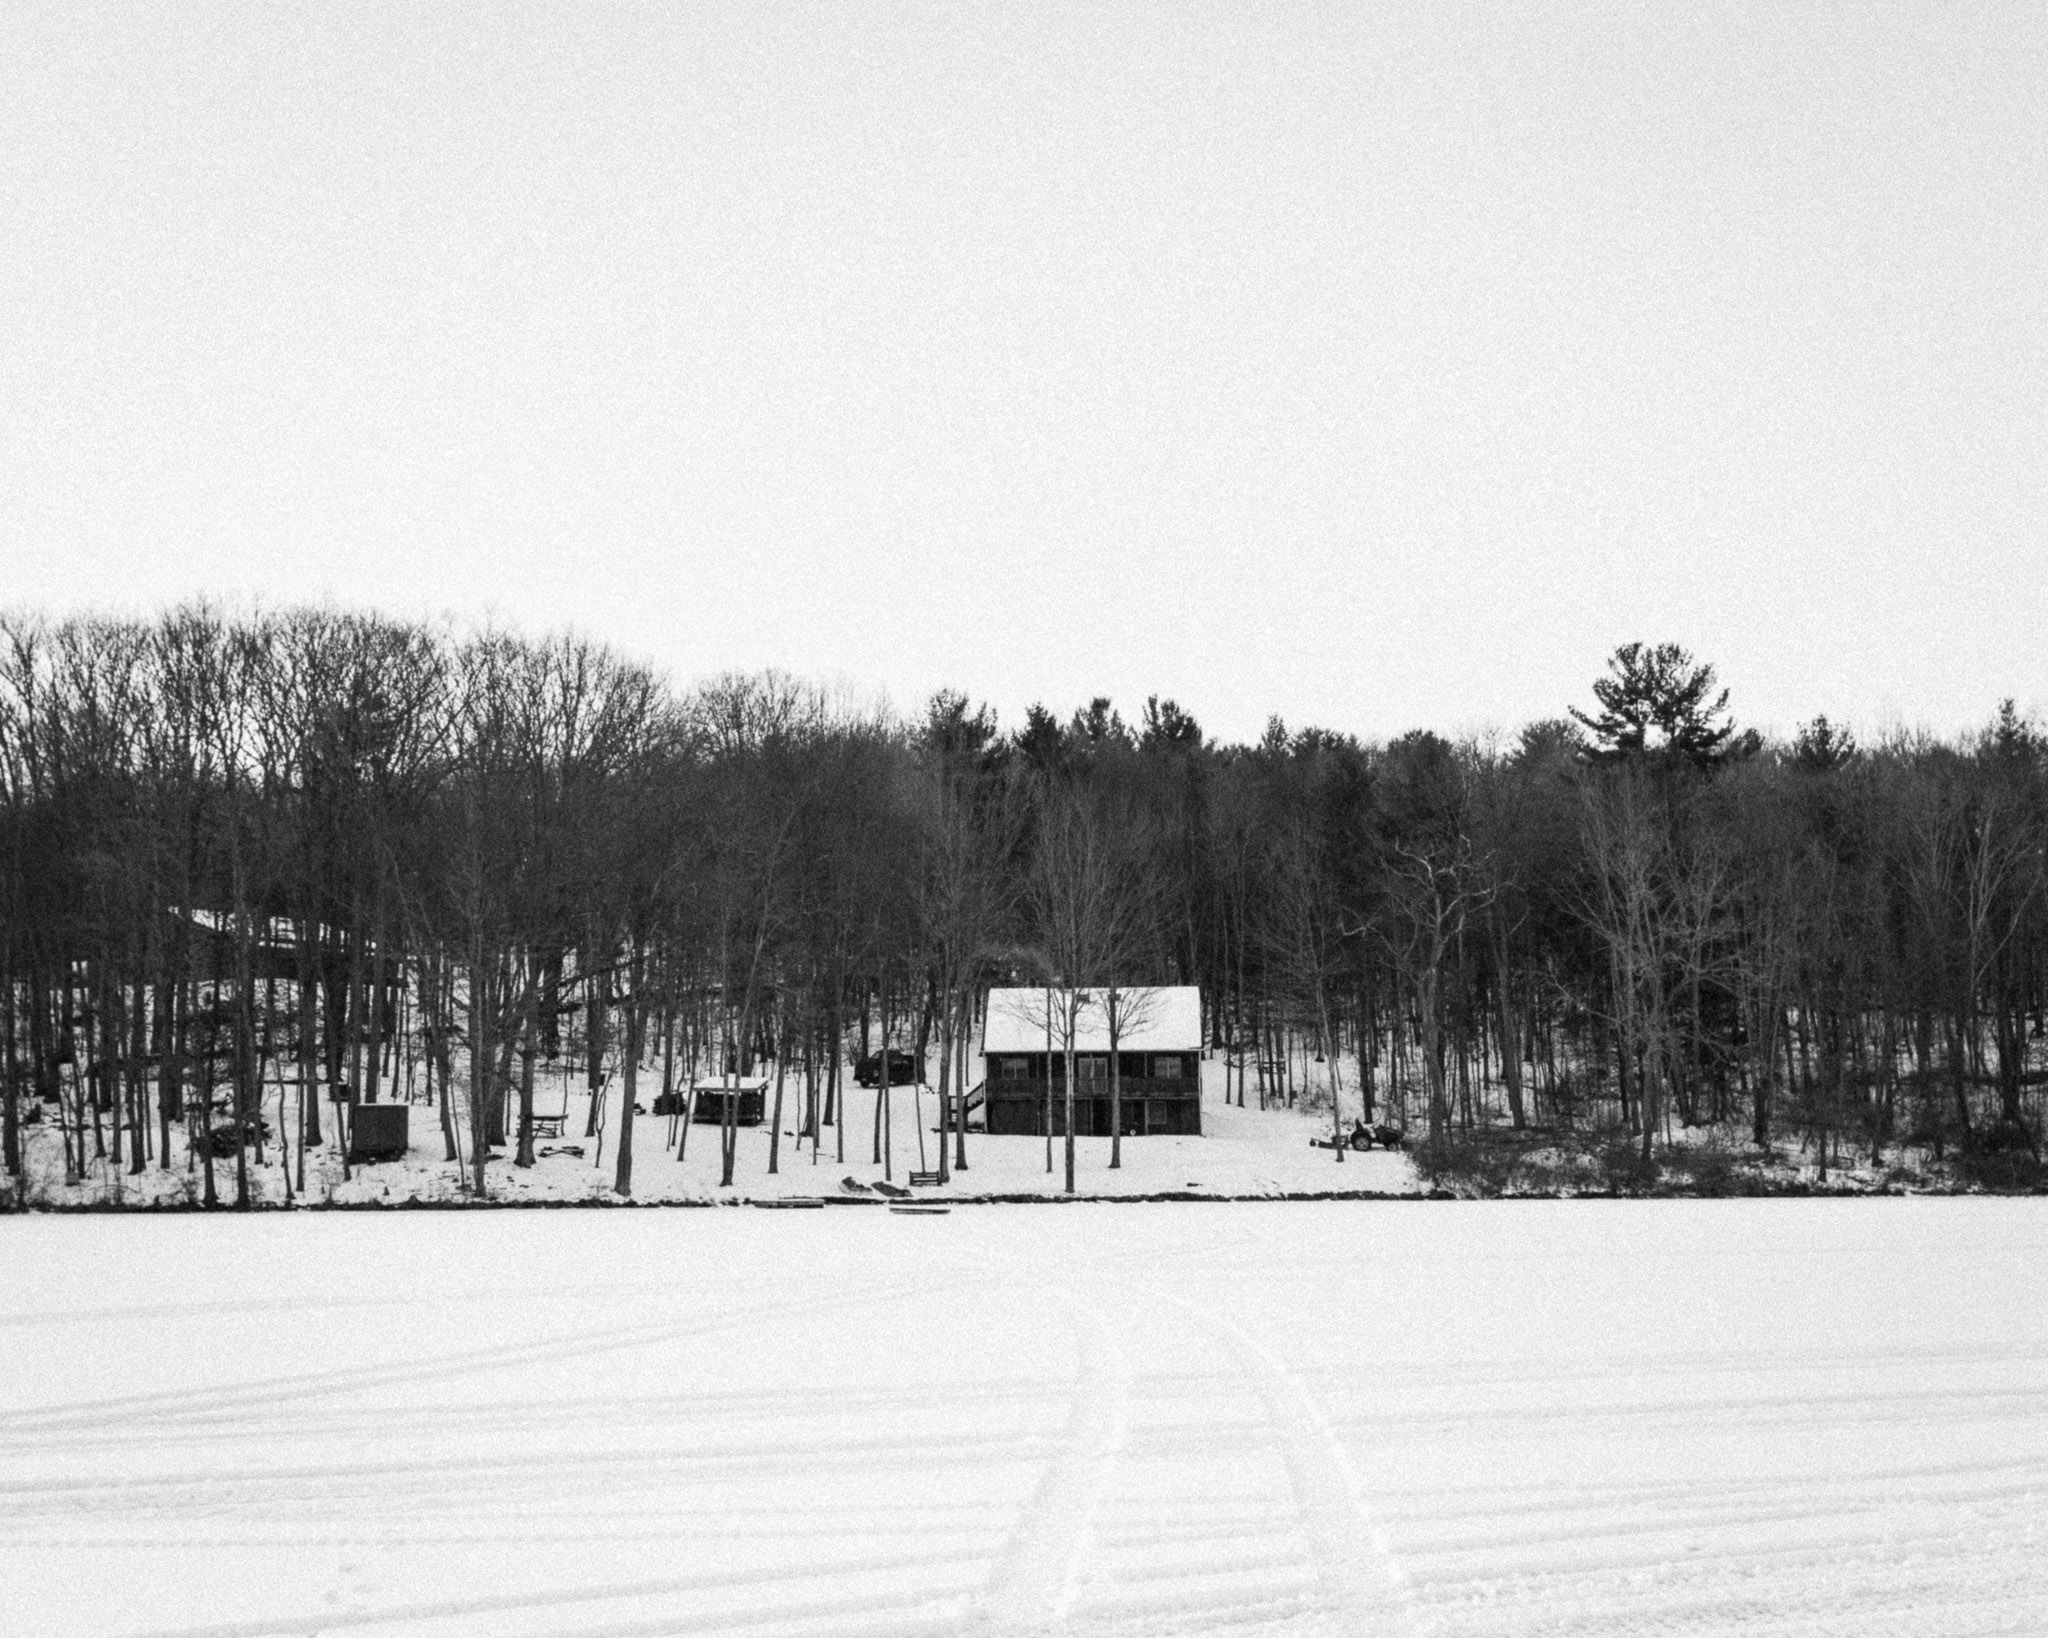 in truth, i have struggled to capture even a half-decent image of the family cabin; this is just one of my many attempts